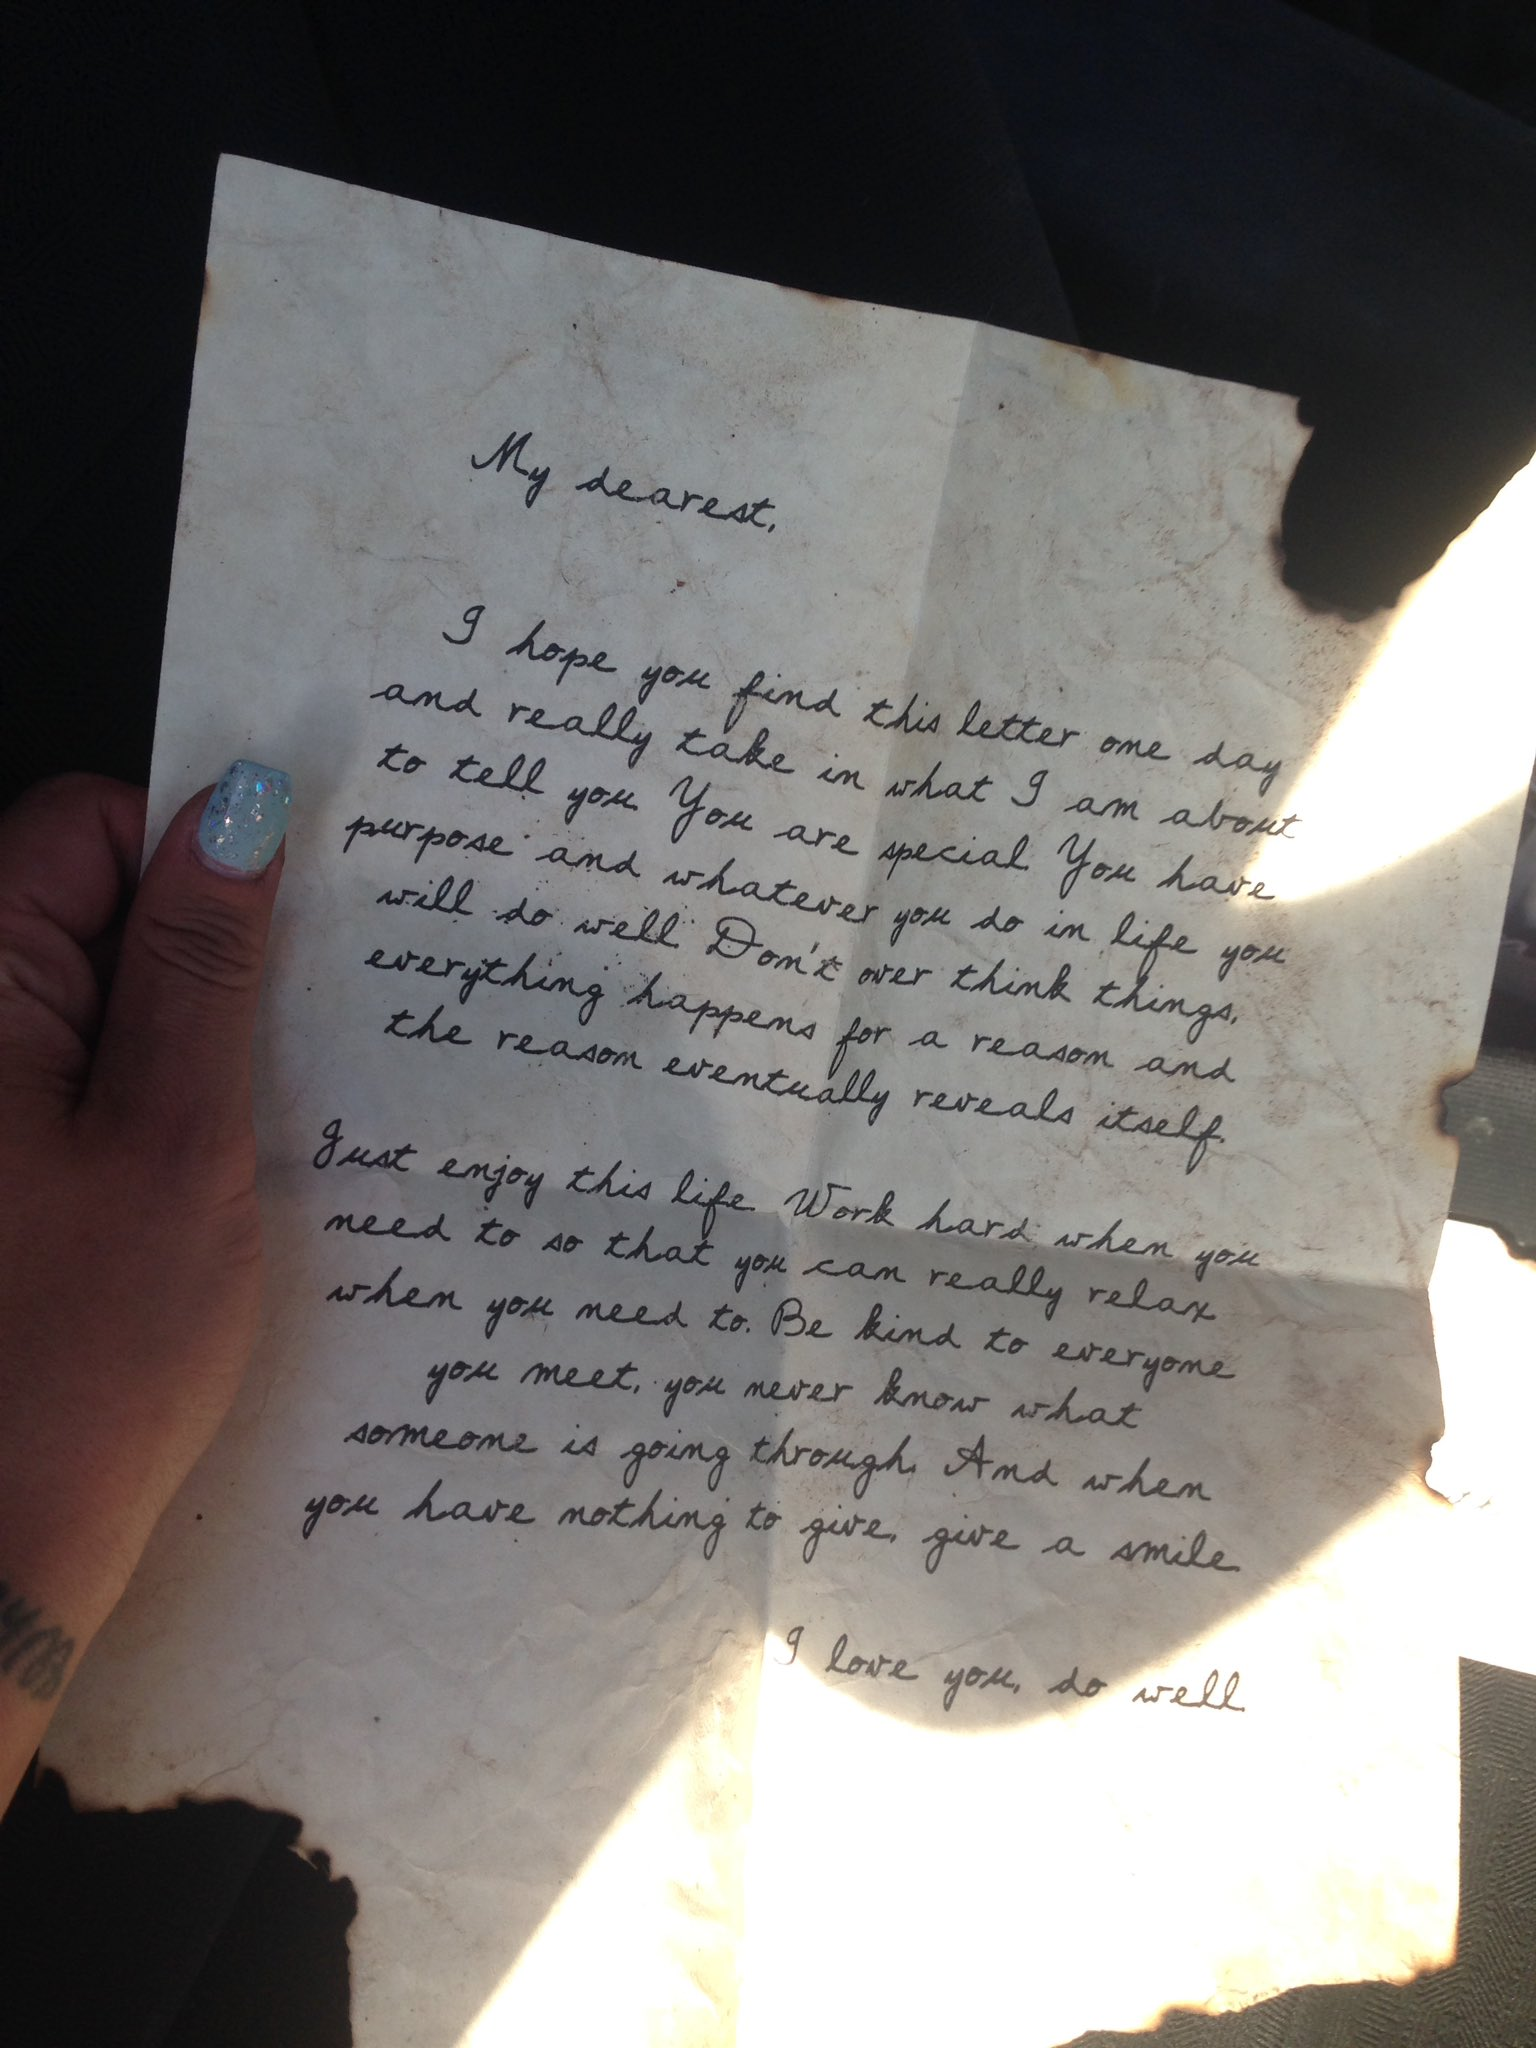 We just stopped back at our campsite and this letter was left. @Electric_Forest thank you for these moments. ✨�������� https://t.co/txhwA0Qgnz